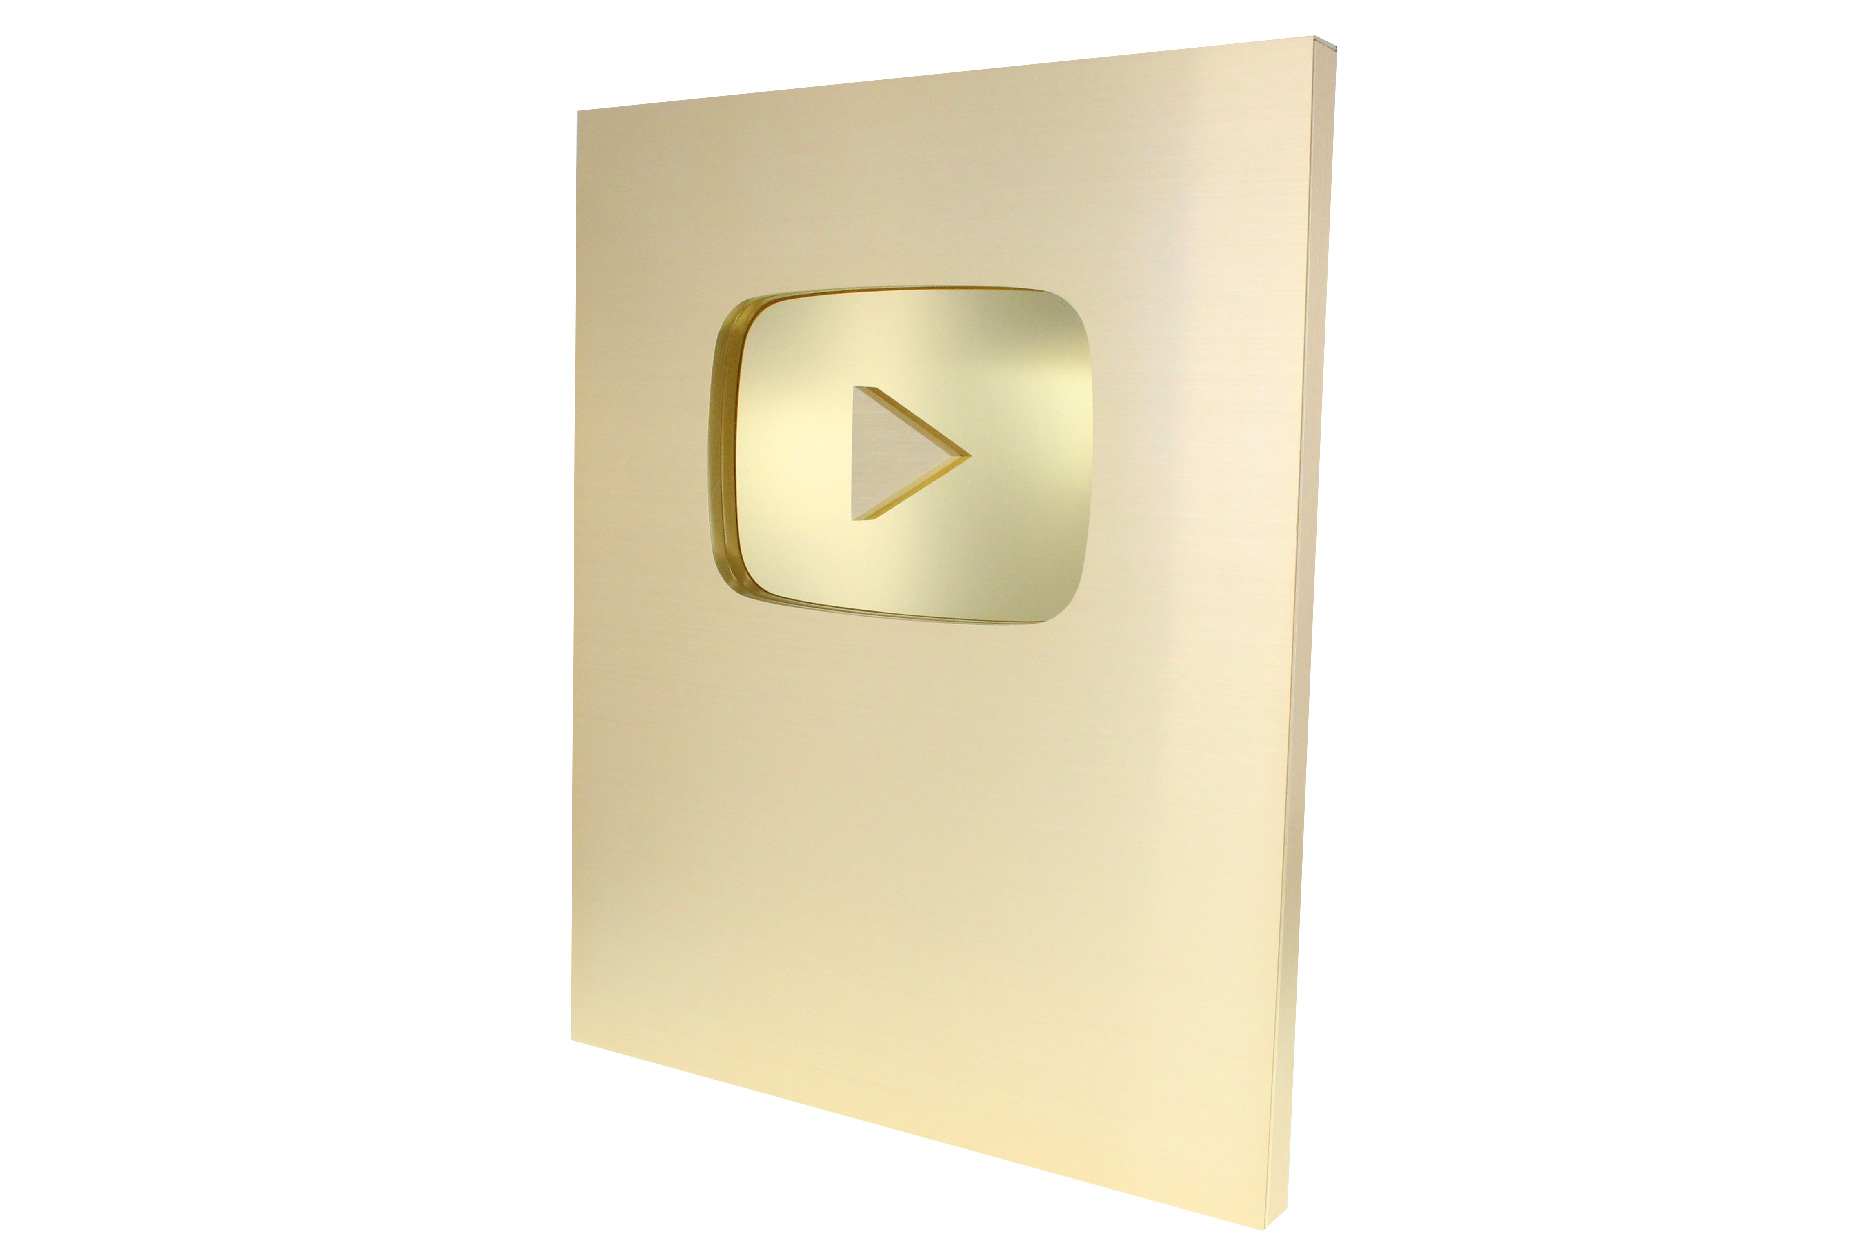 Youtube Creator Award Gold Plaque